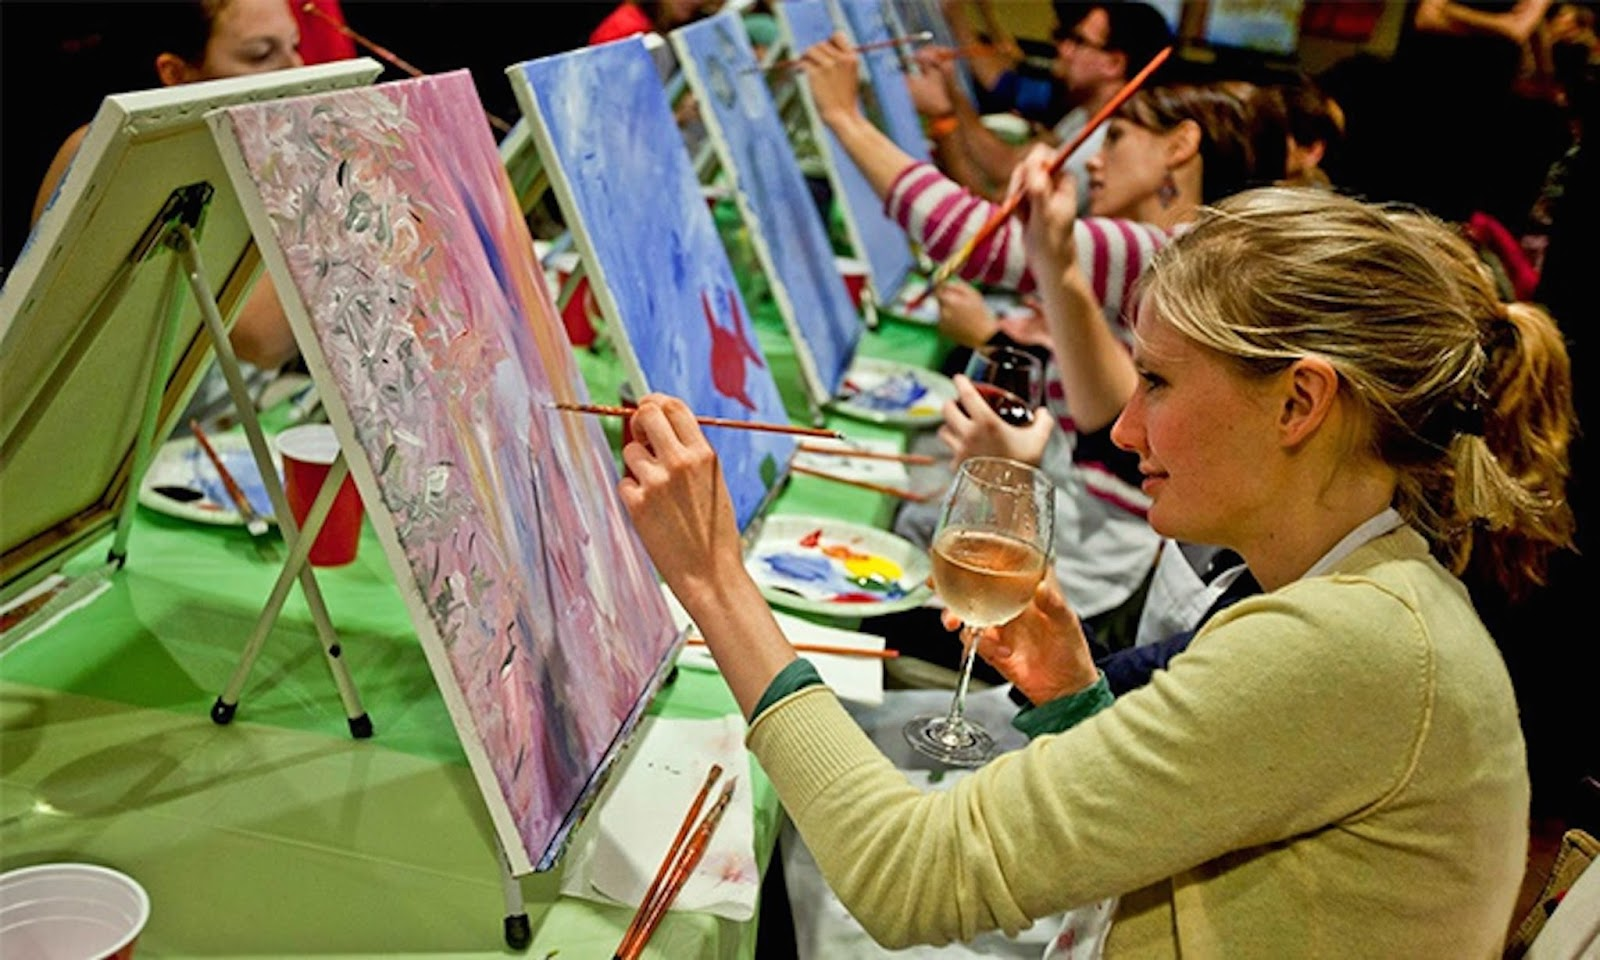 Lehigh Valley TV: Five Great Places for DIY Art in the Lehigh Valley